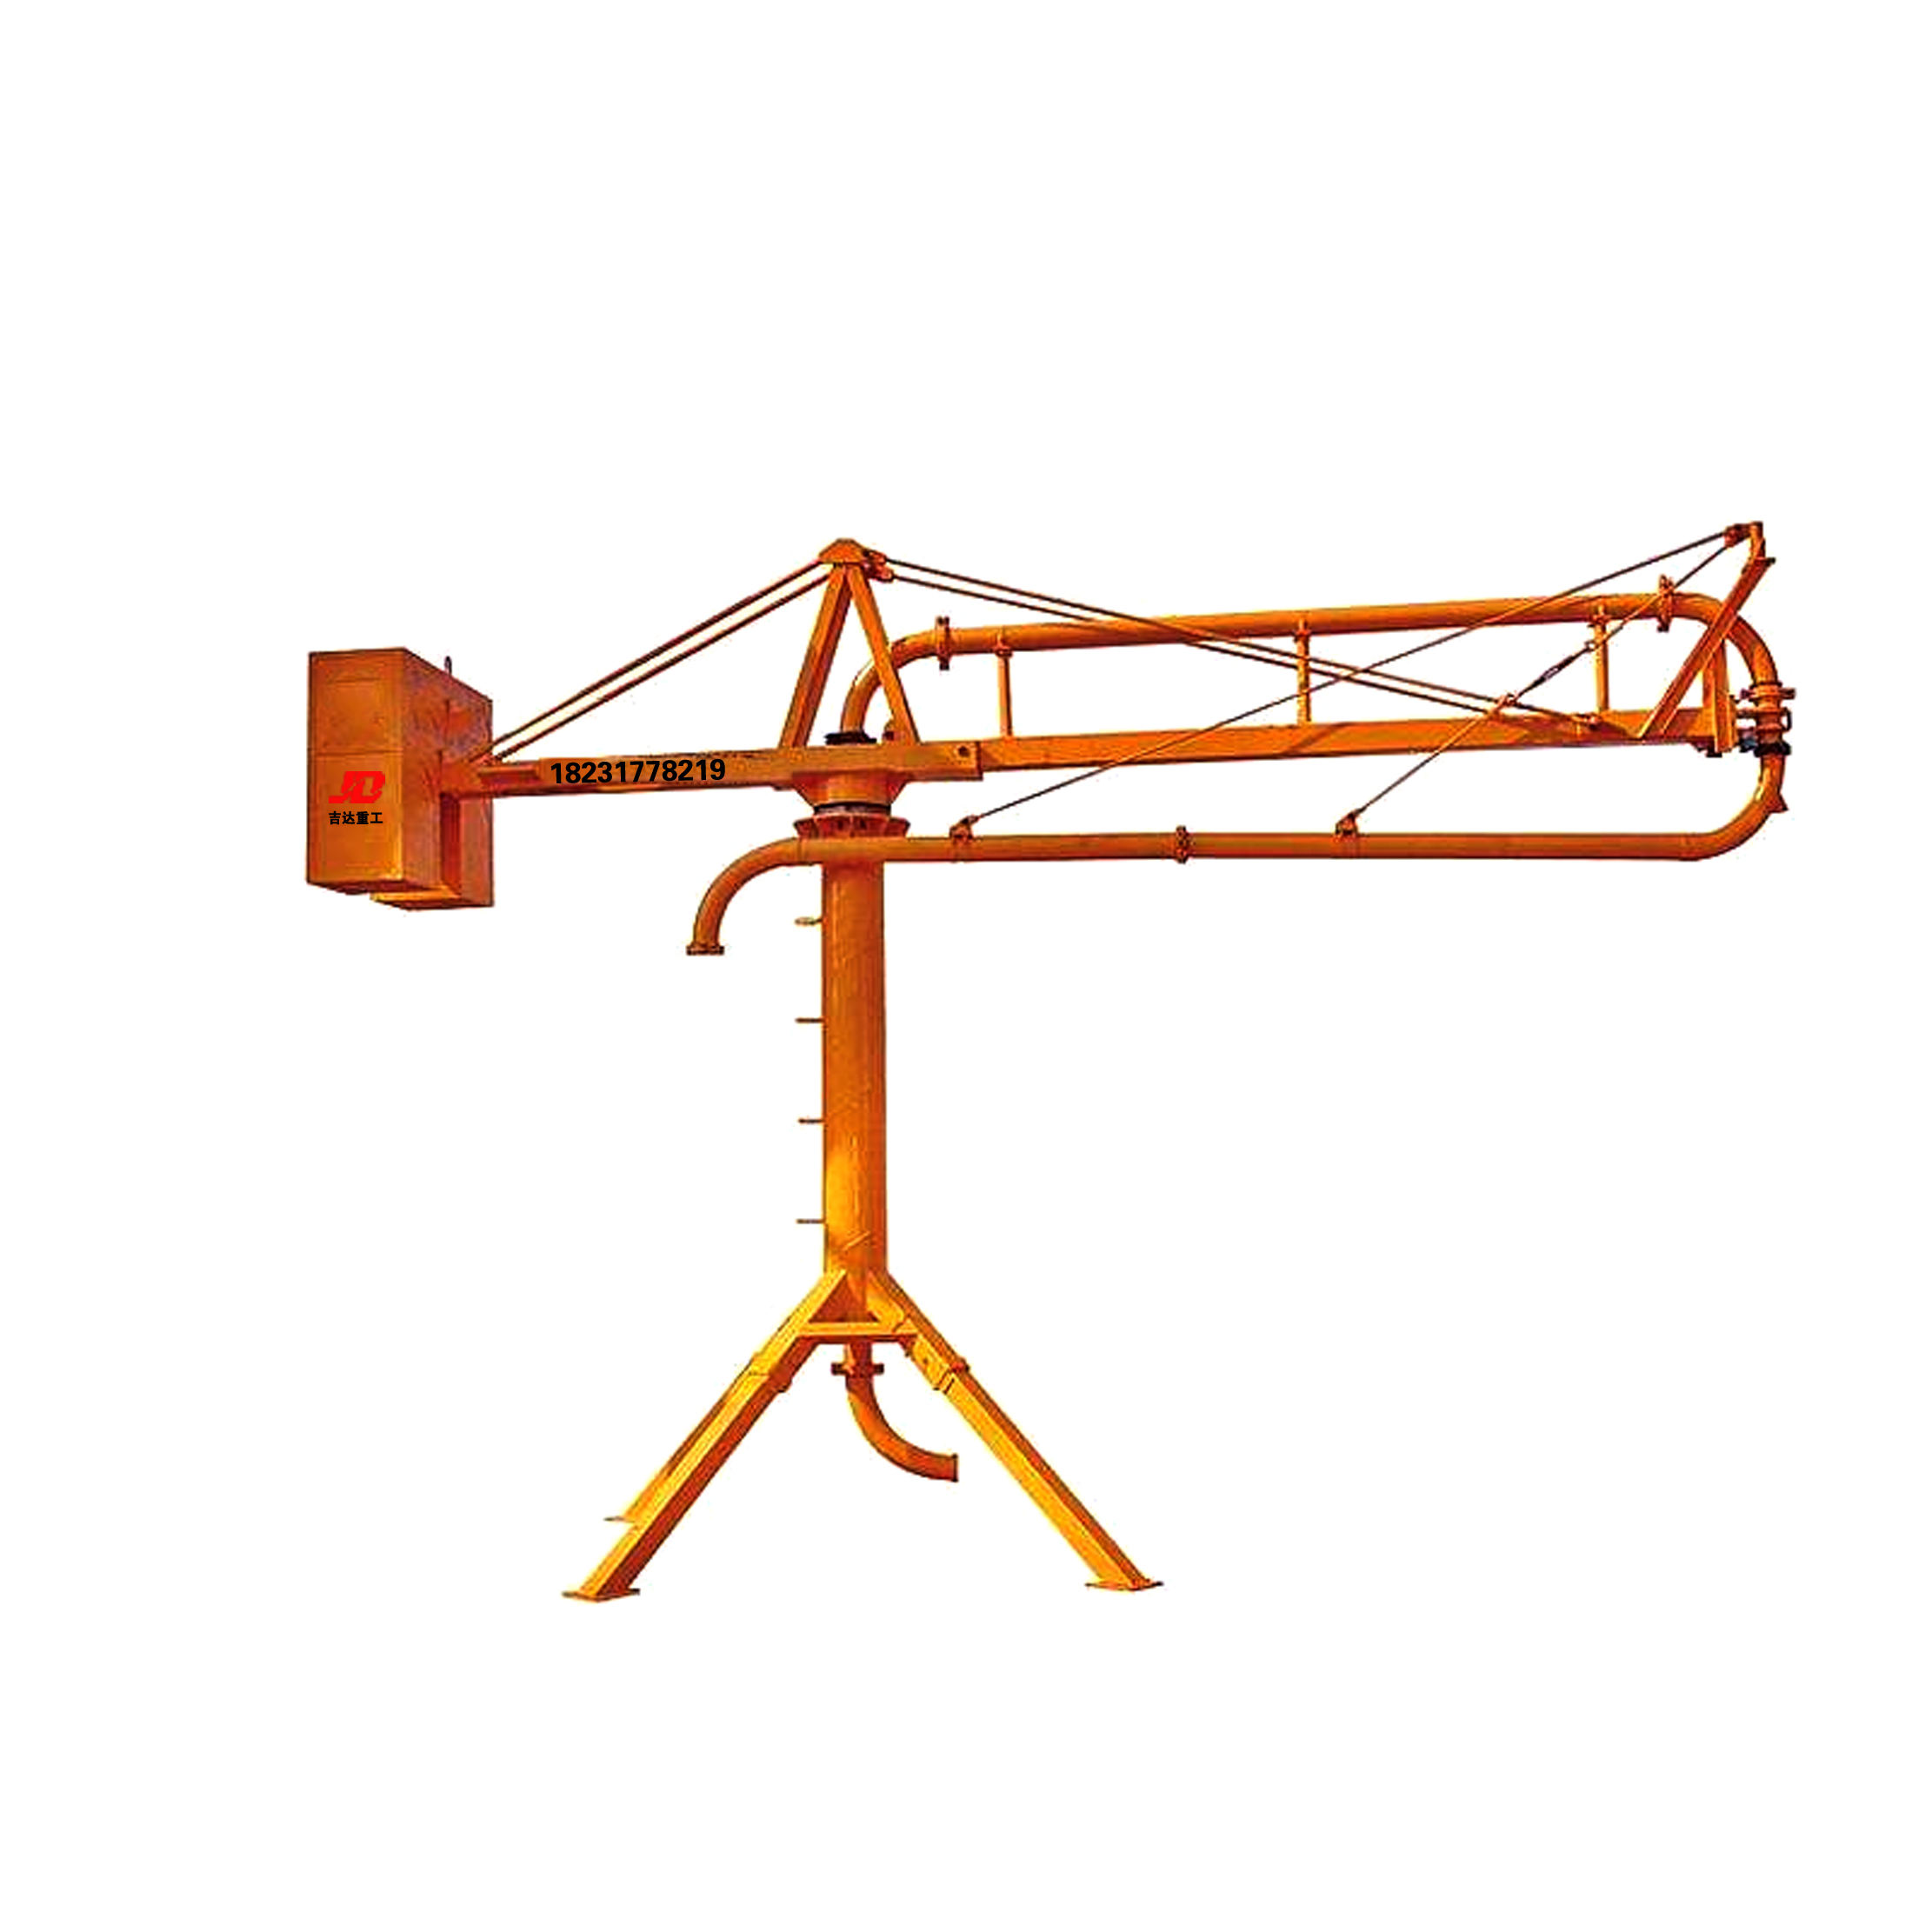 Construction Machinery Manual/Mobile Concrete placing boom/concrete spreader